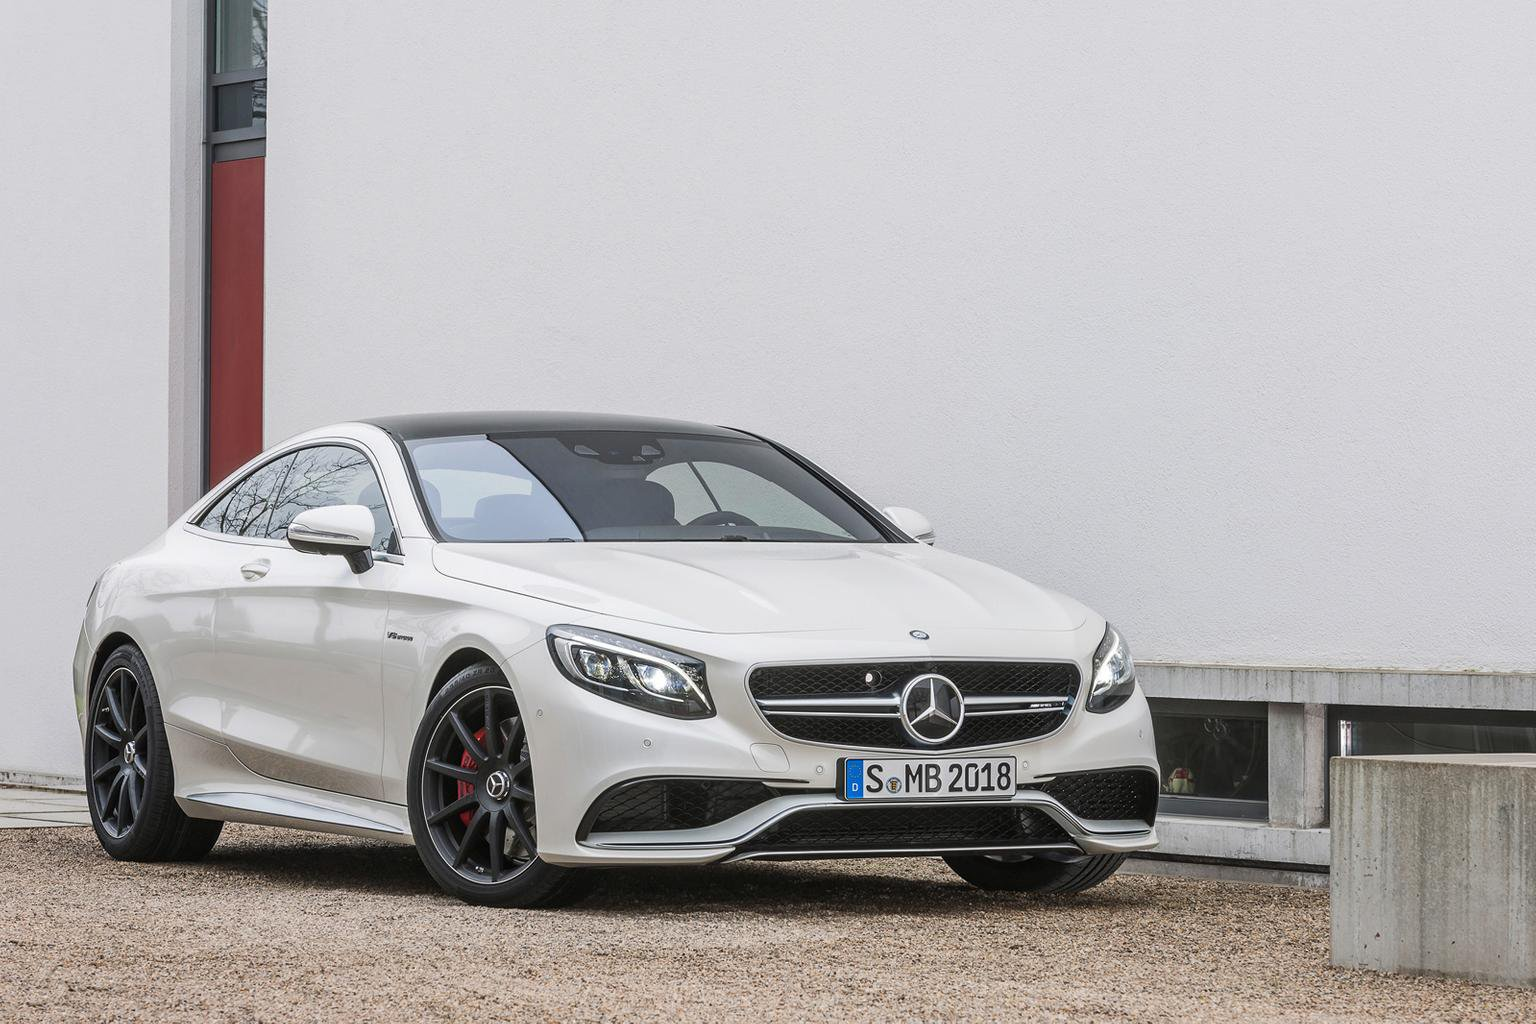 Mercedes S63 AMG Coupe revealed